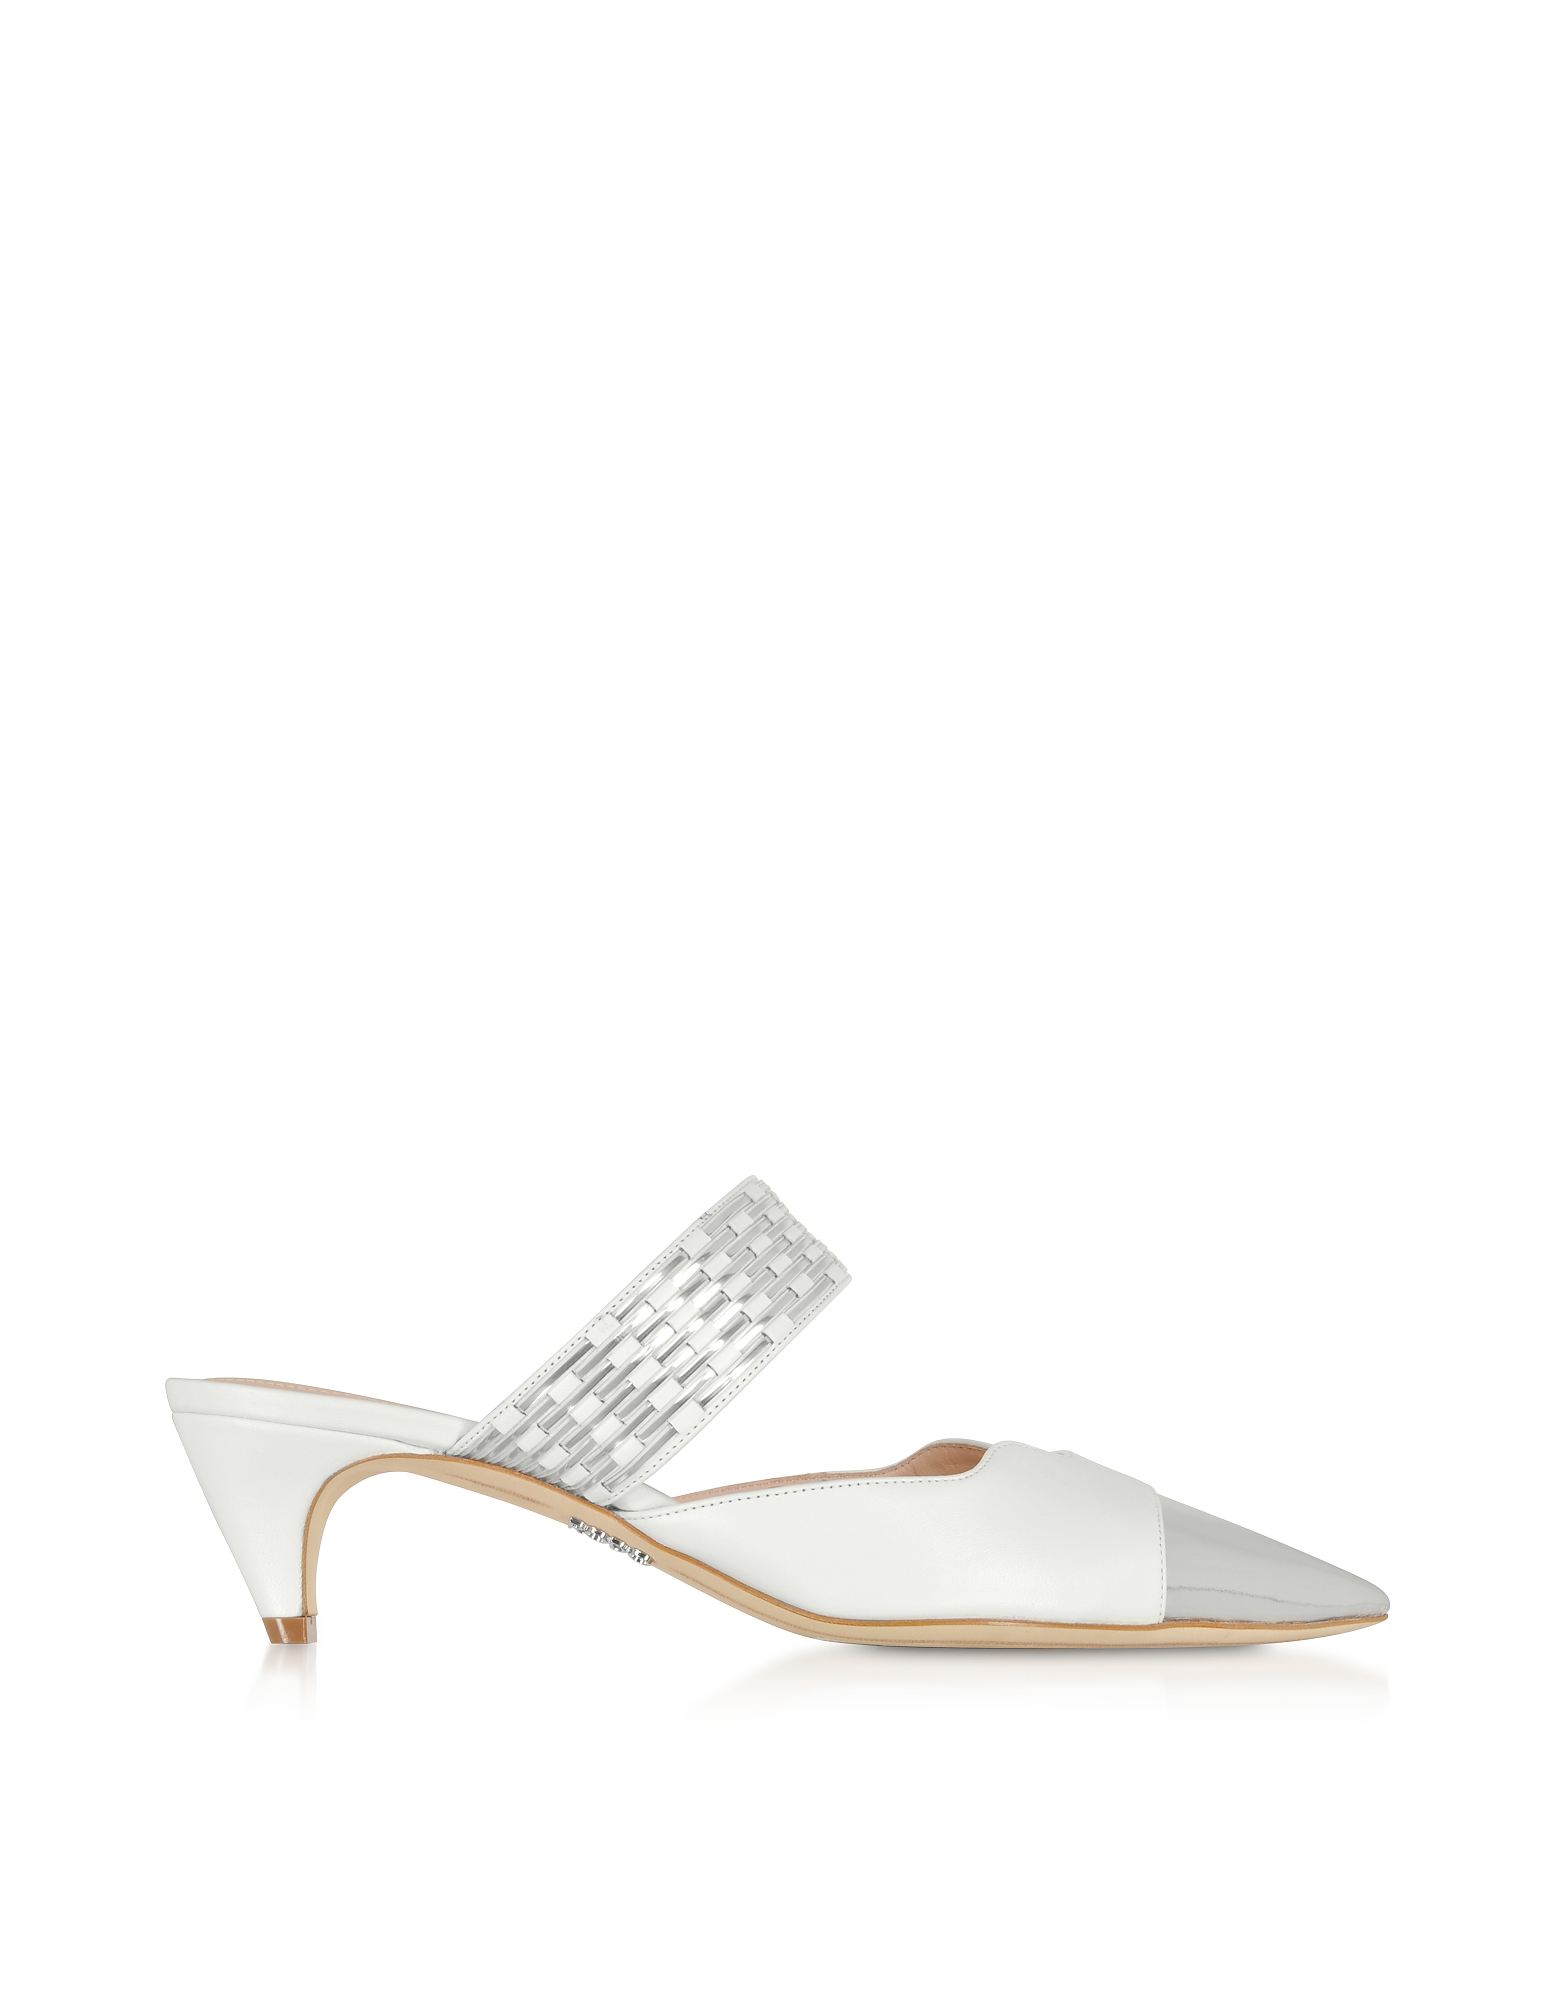 Rodo Designer Shoes, White Nappa Leather Leather Kitten Heel Mules